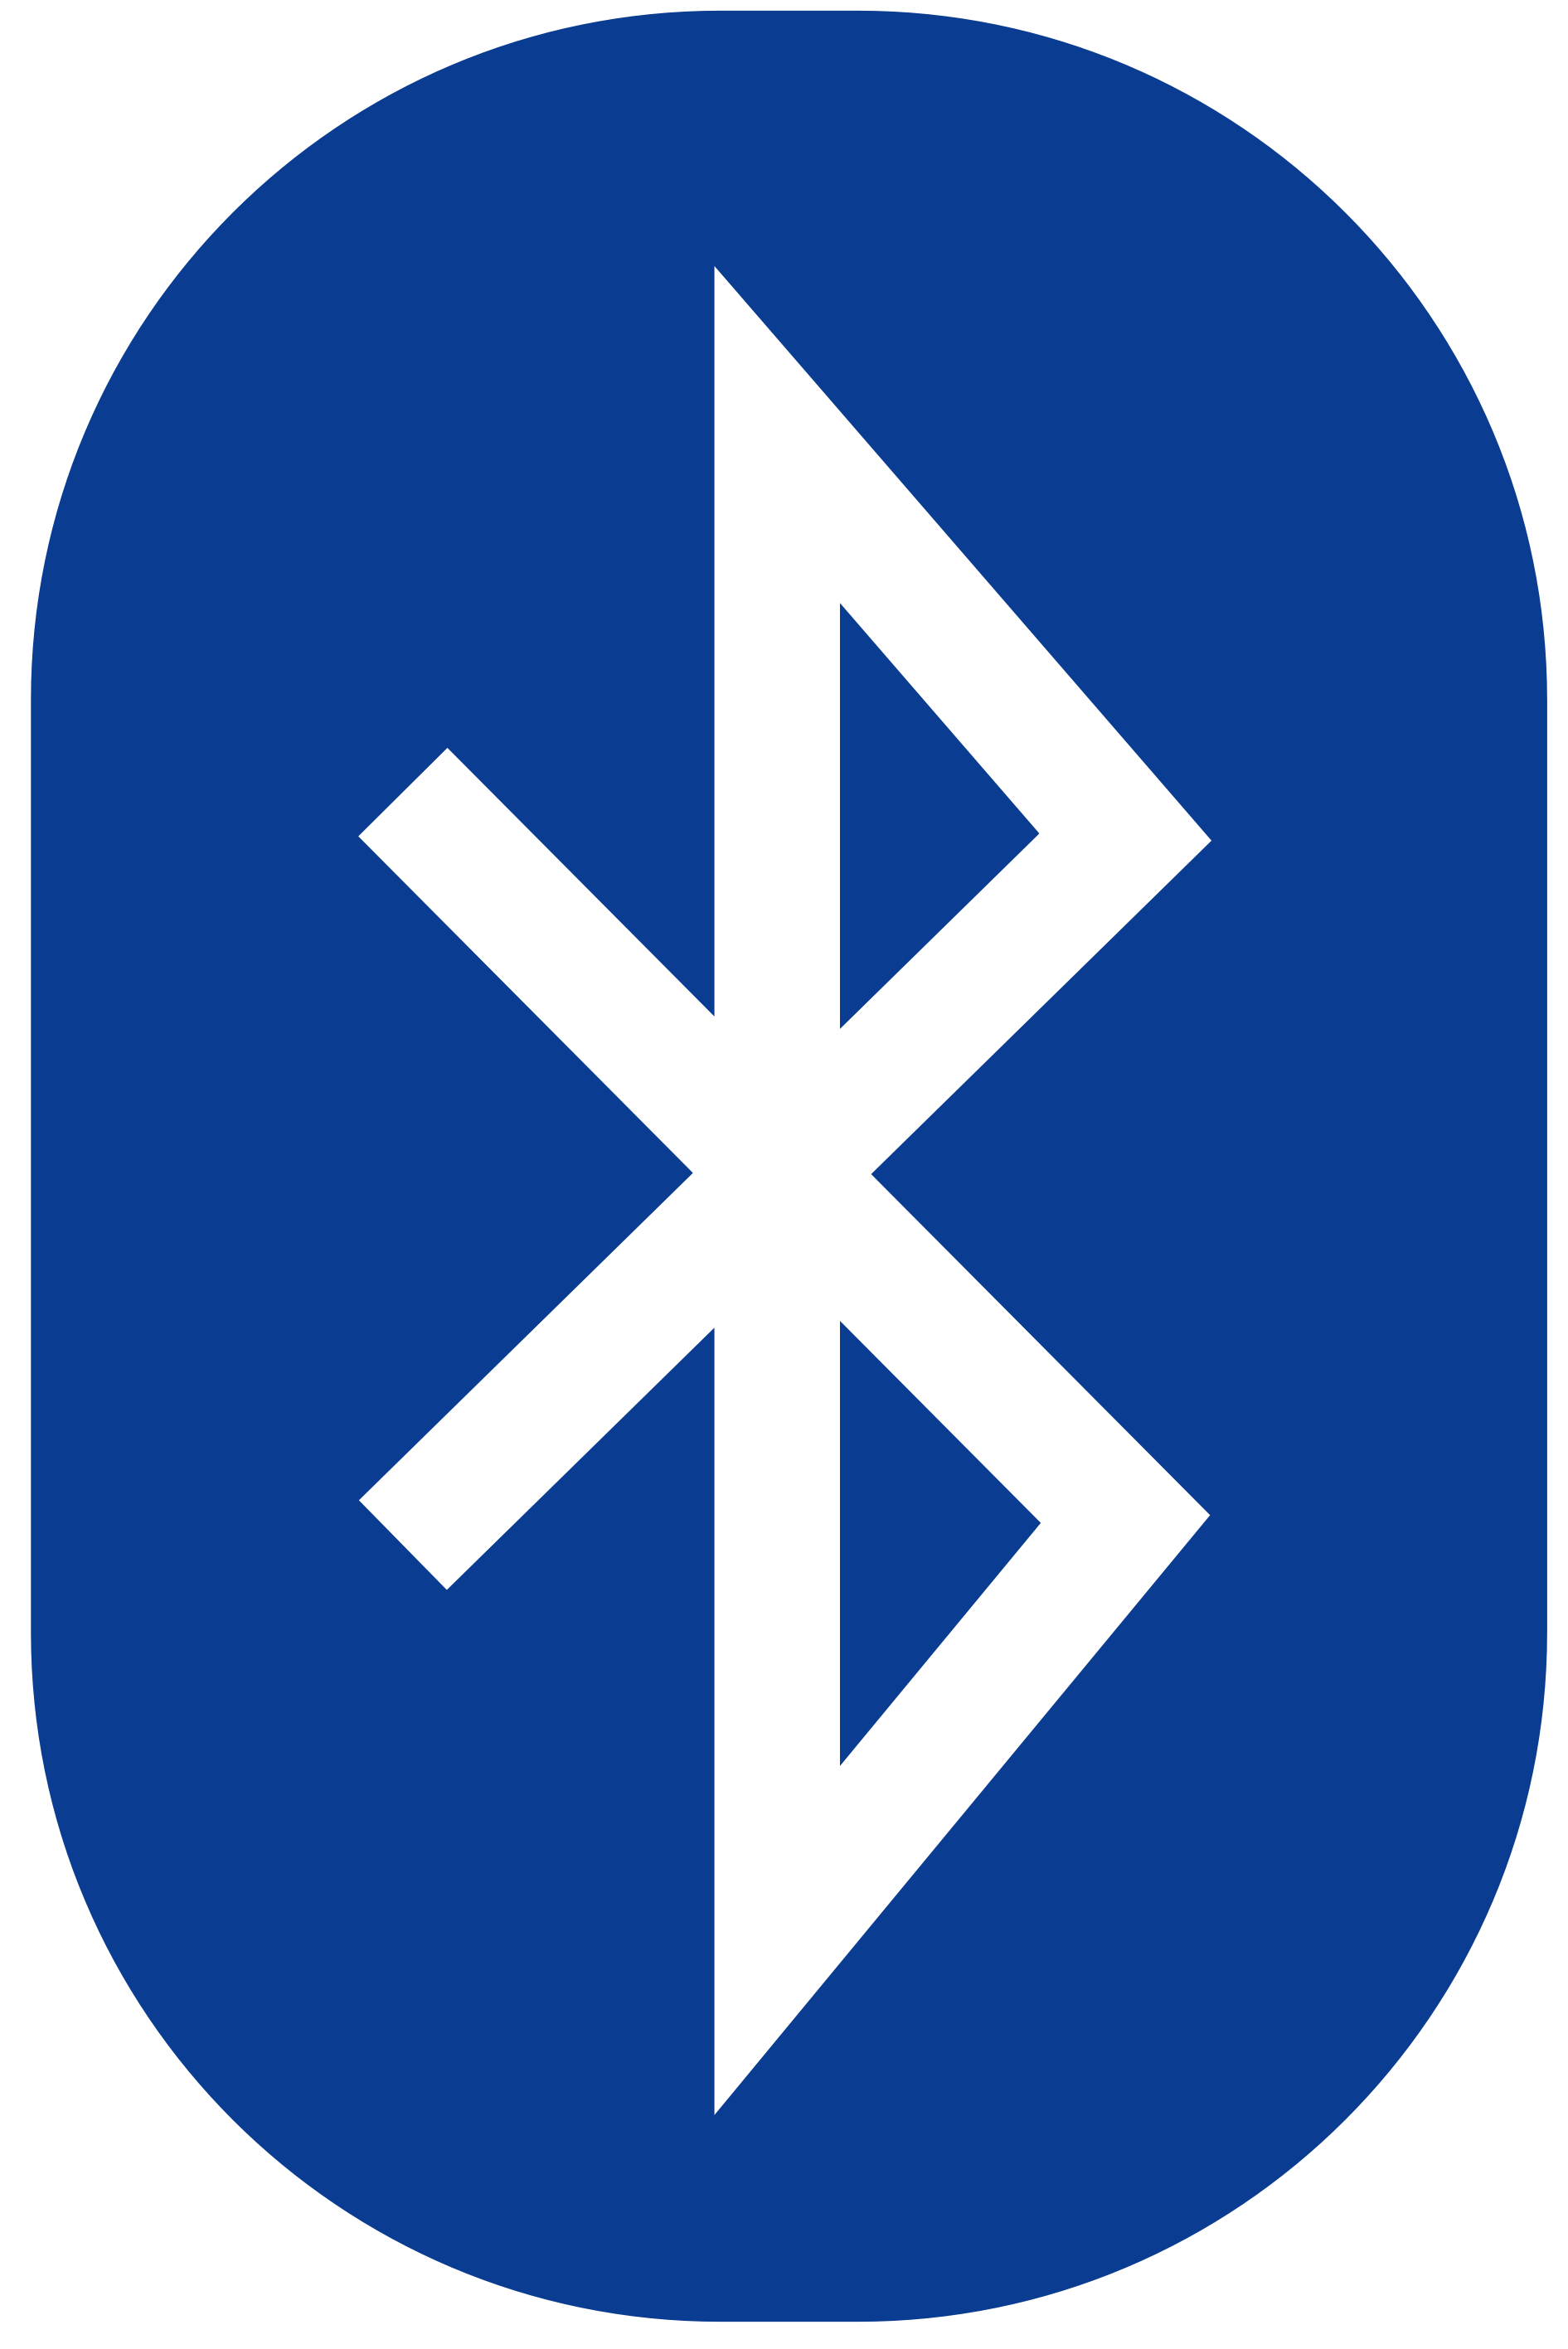 Bluetooth logo large